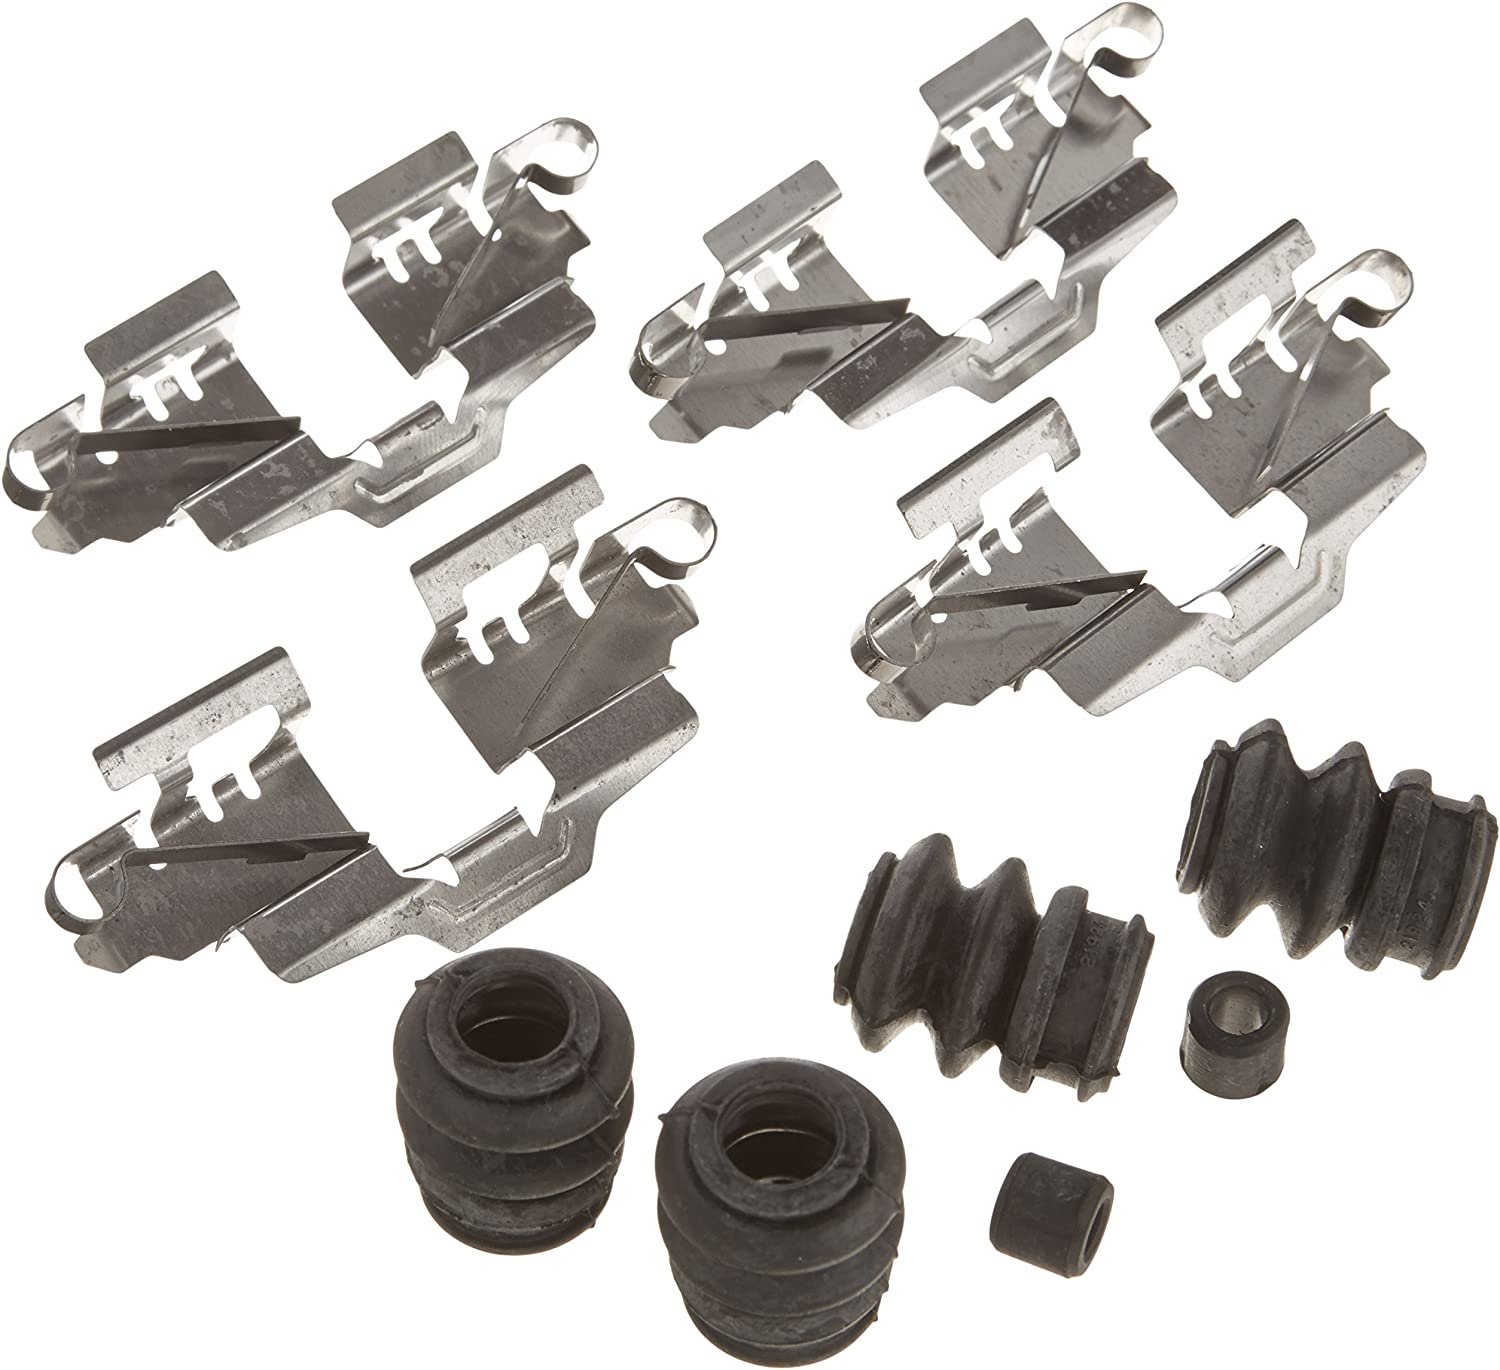 Front Pair, Spring, and Strut Mount Assembly Kit Unity Automotive 2-11485-11486-001 Quick Complete